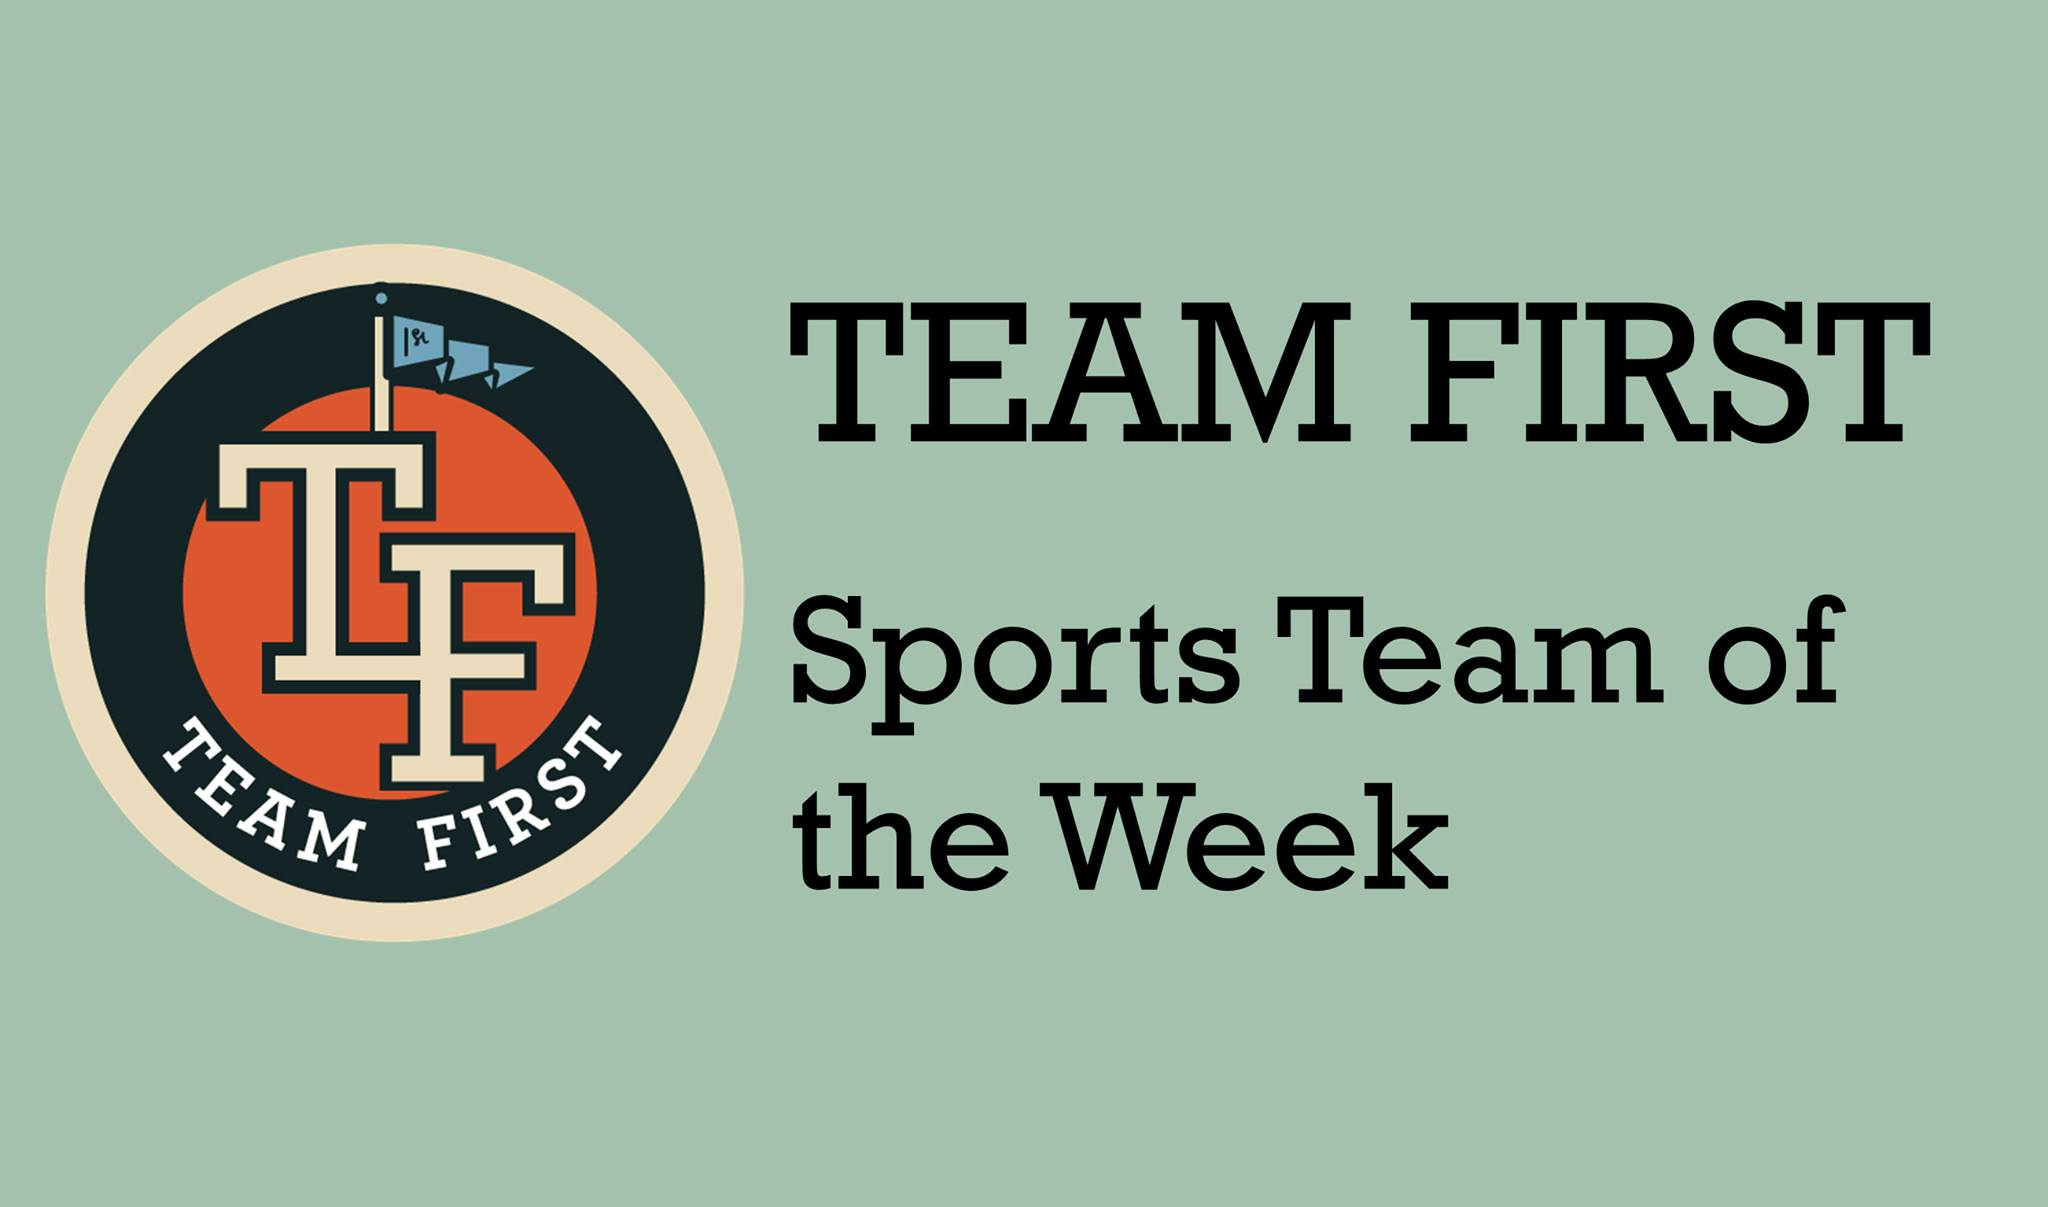 Sports team of the week